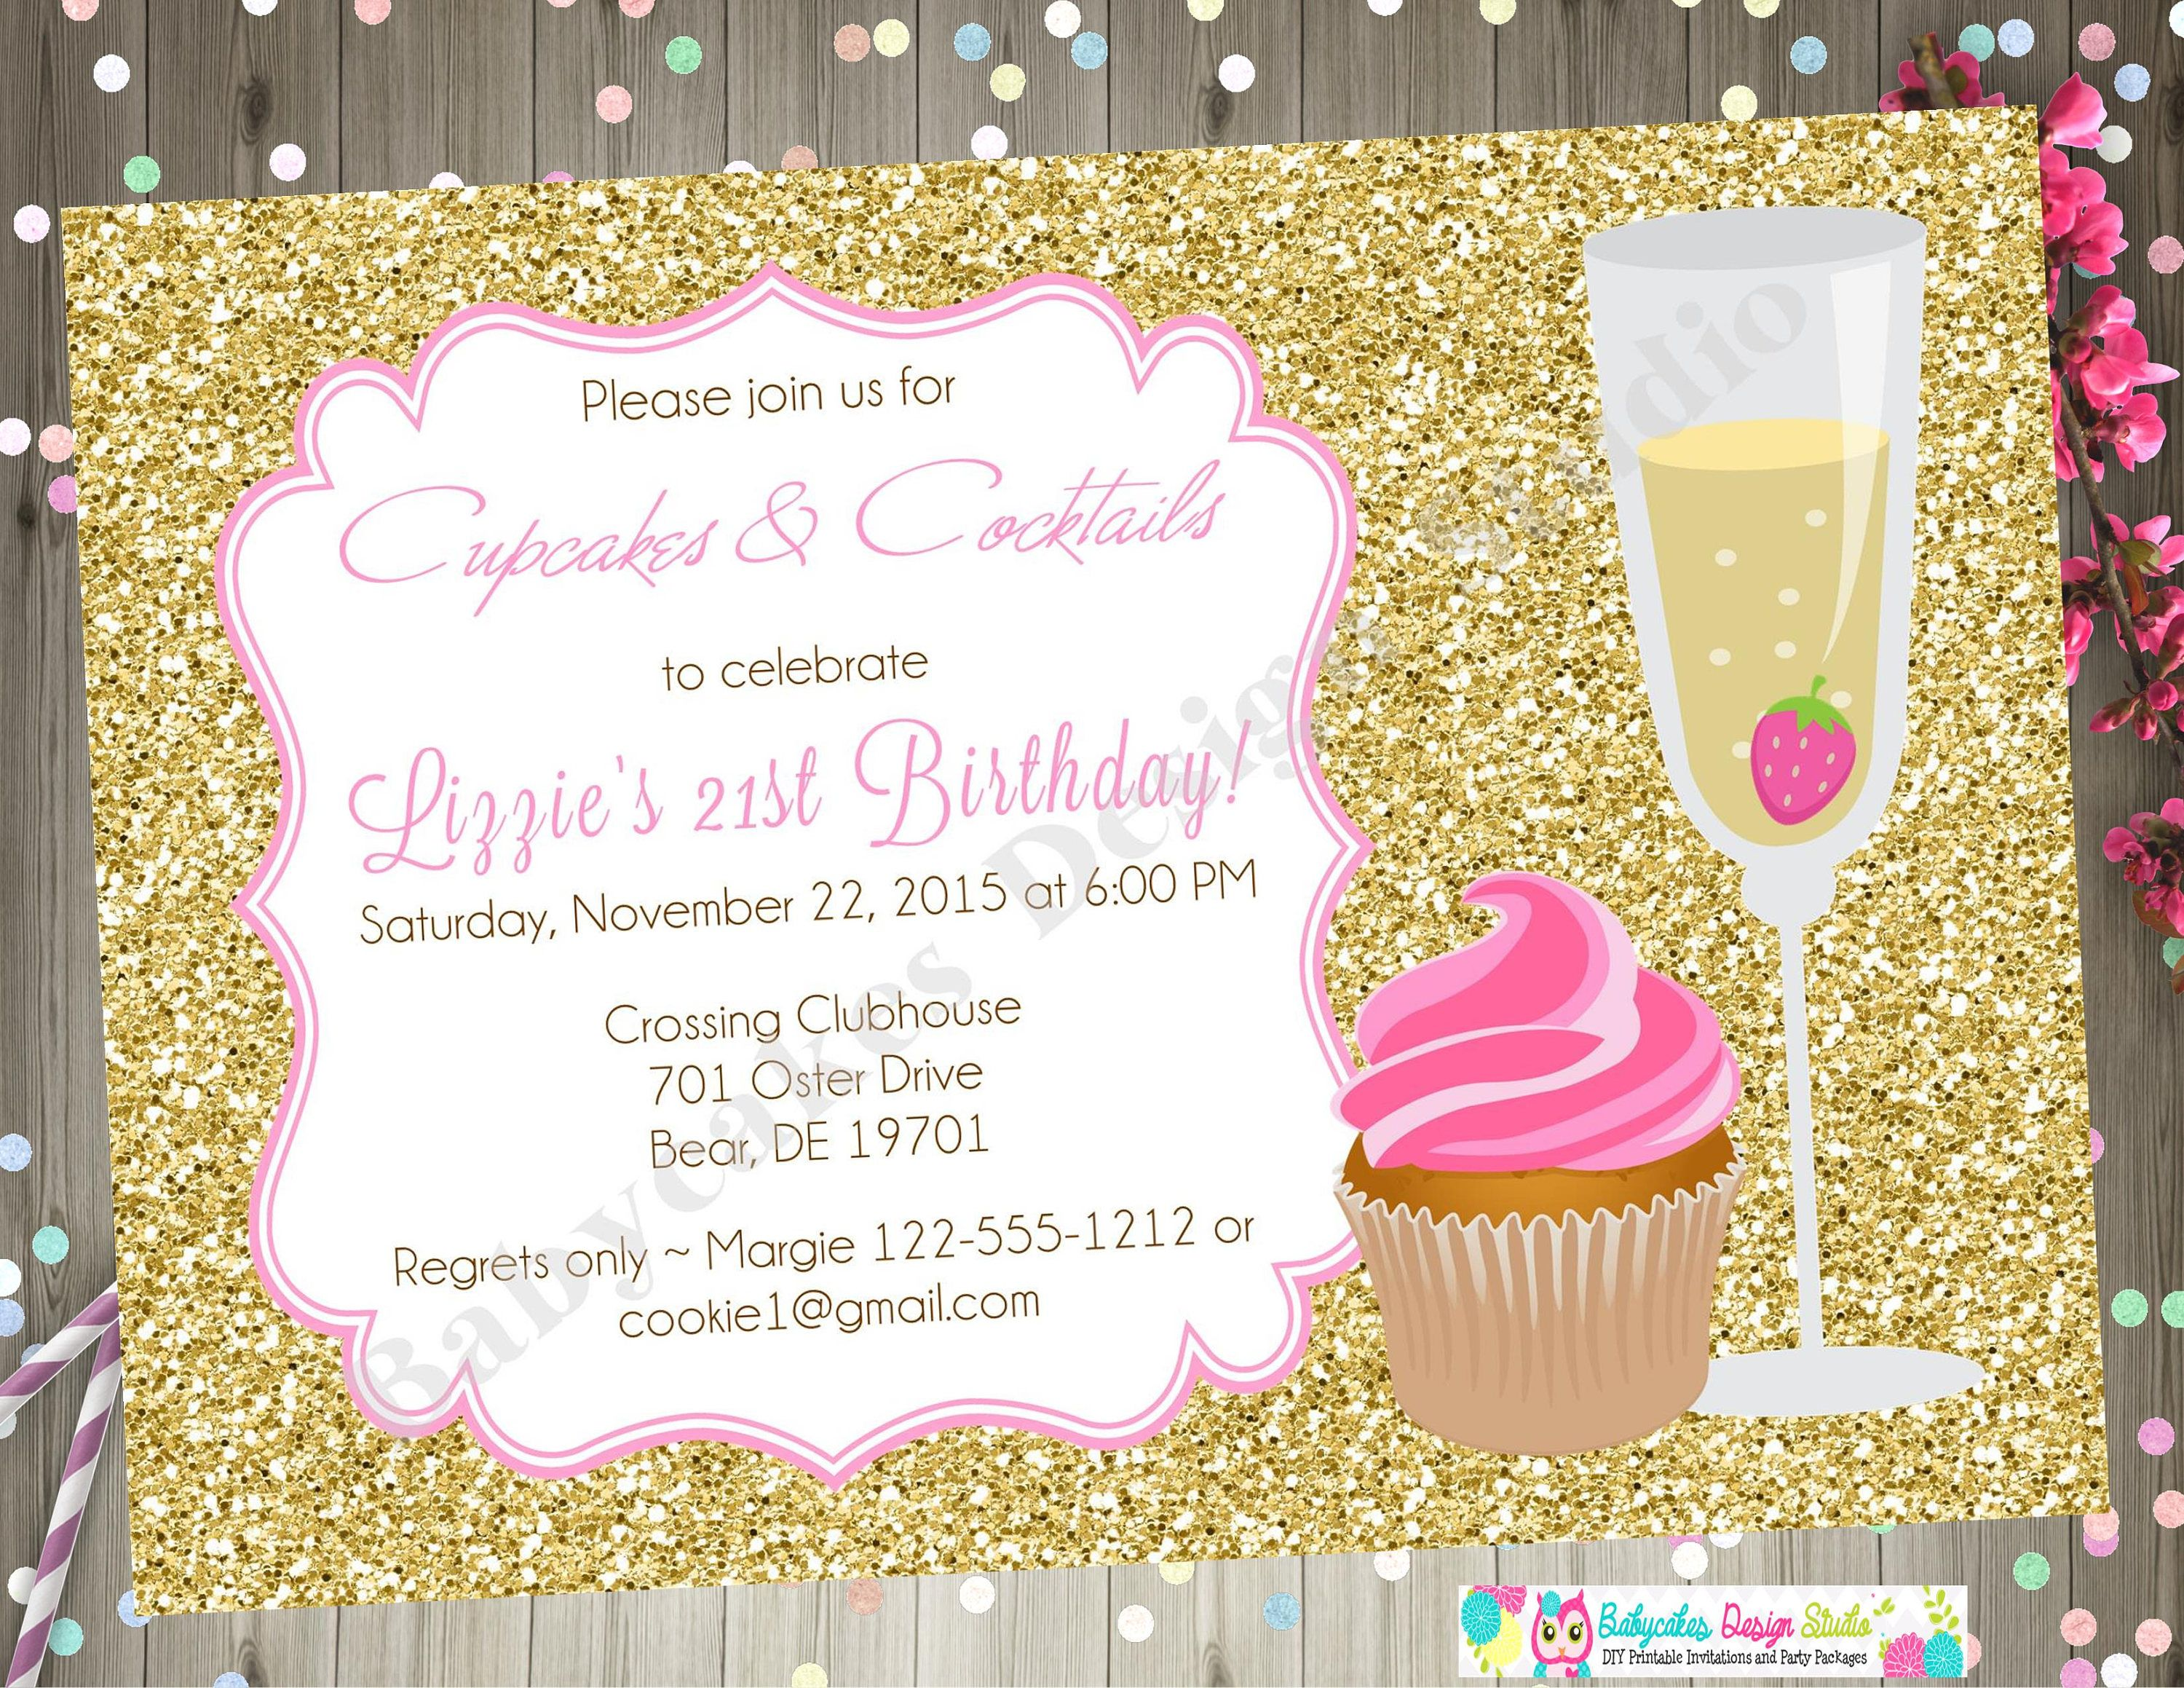 cupcakes and cocktails birthday invitation champagne and cupcakes 21st birthday pink and gold party printable invite wedding shower